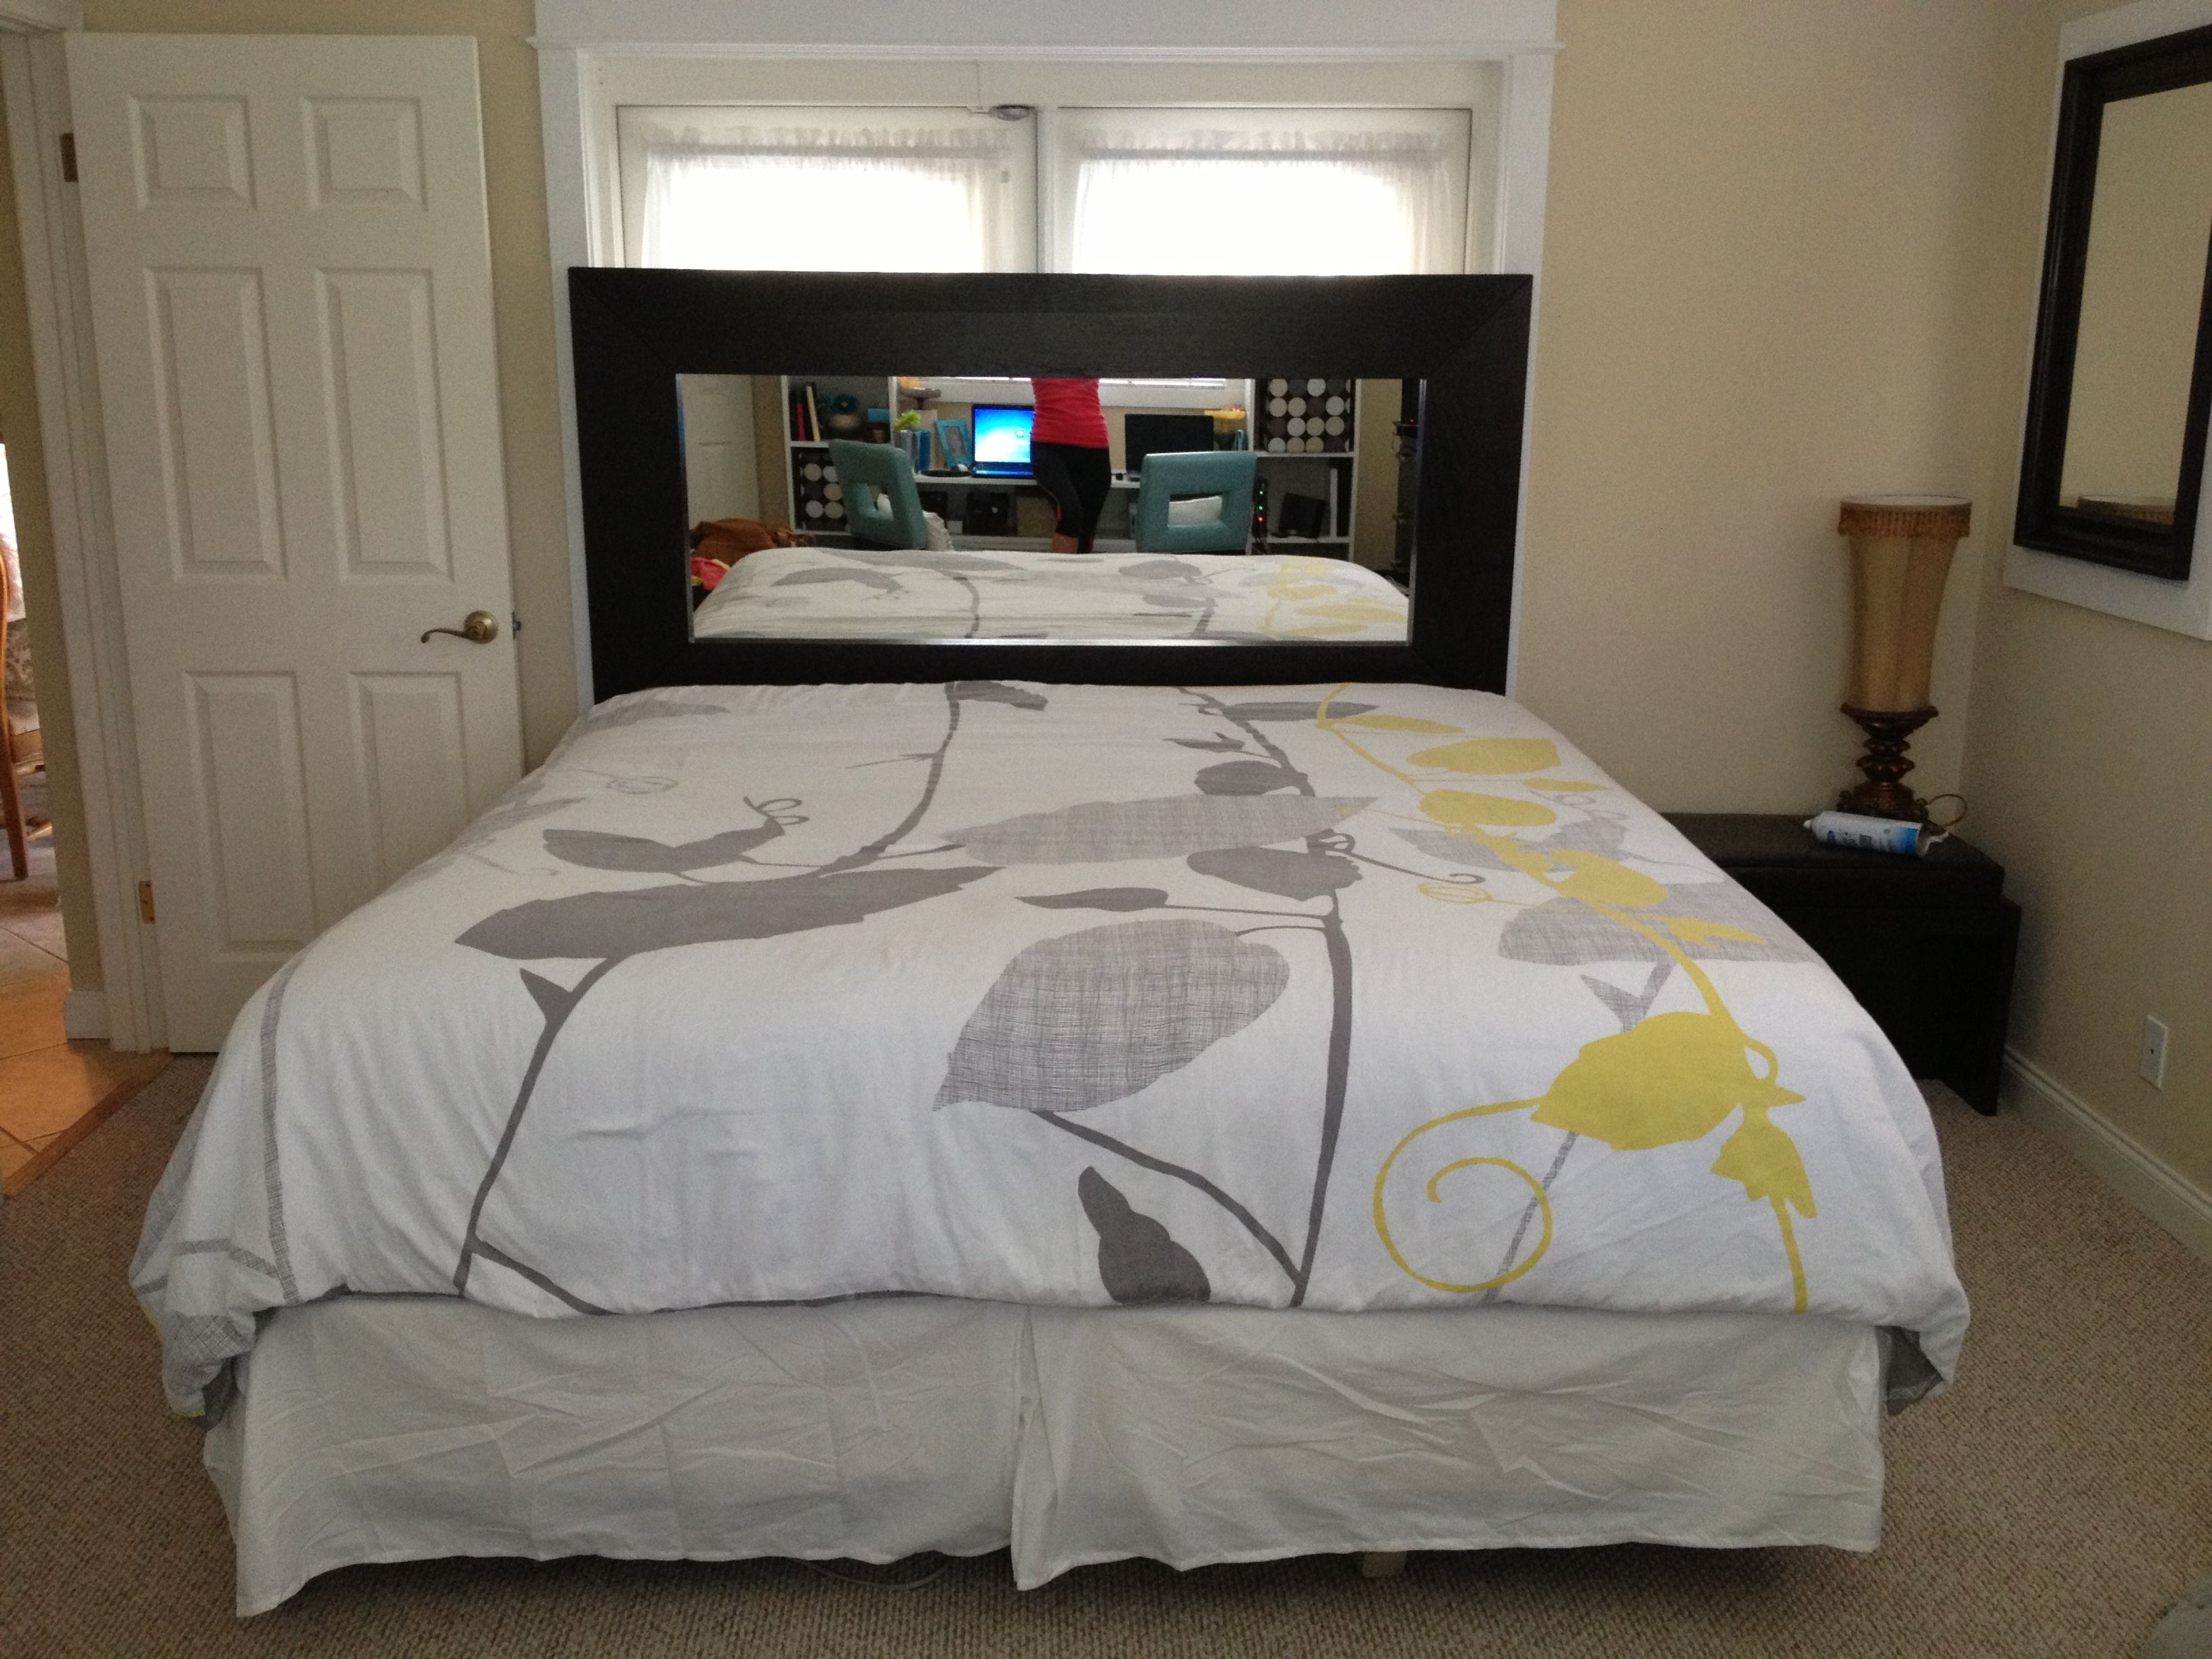 Diy headboard using large mirror from ikea for a king size for Queen bedroom ideas